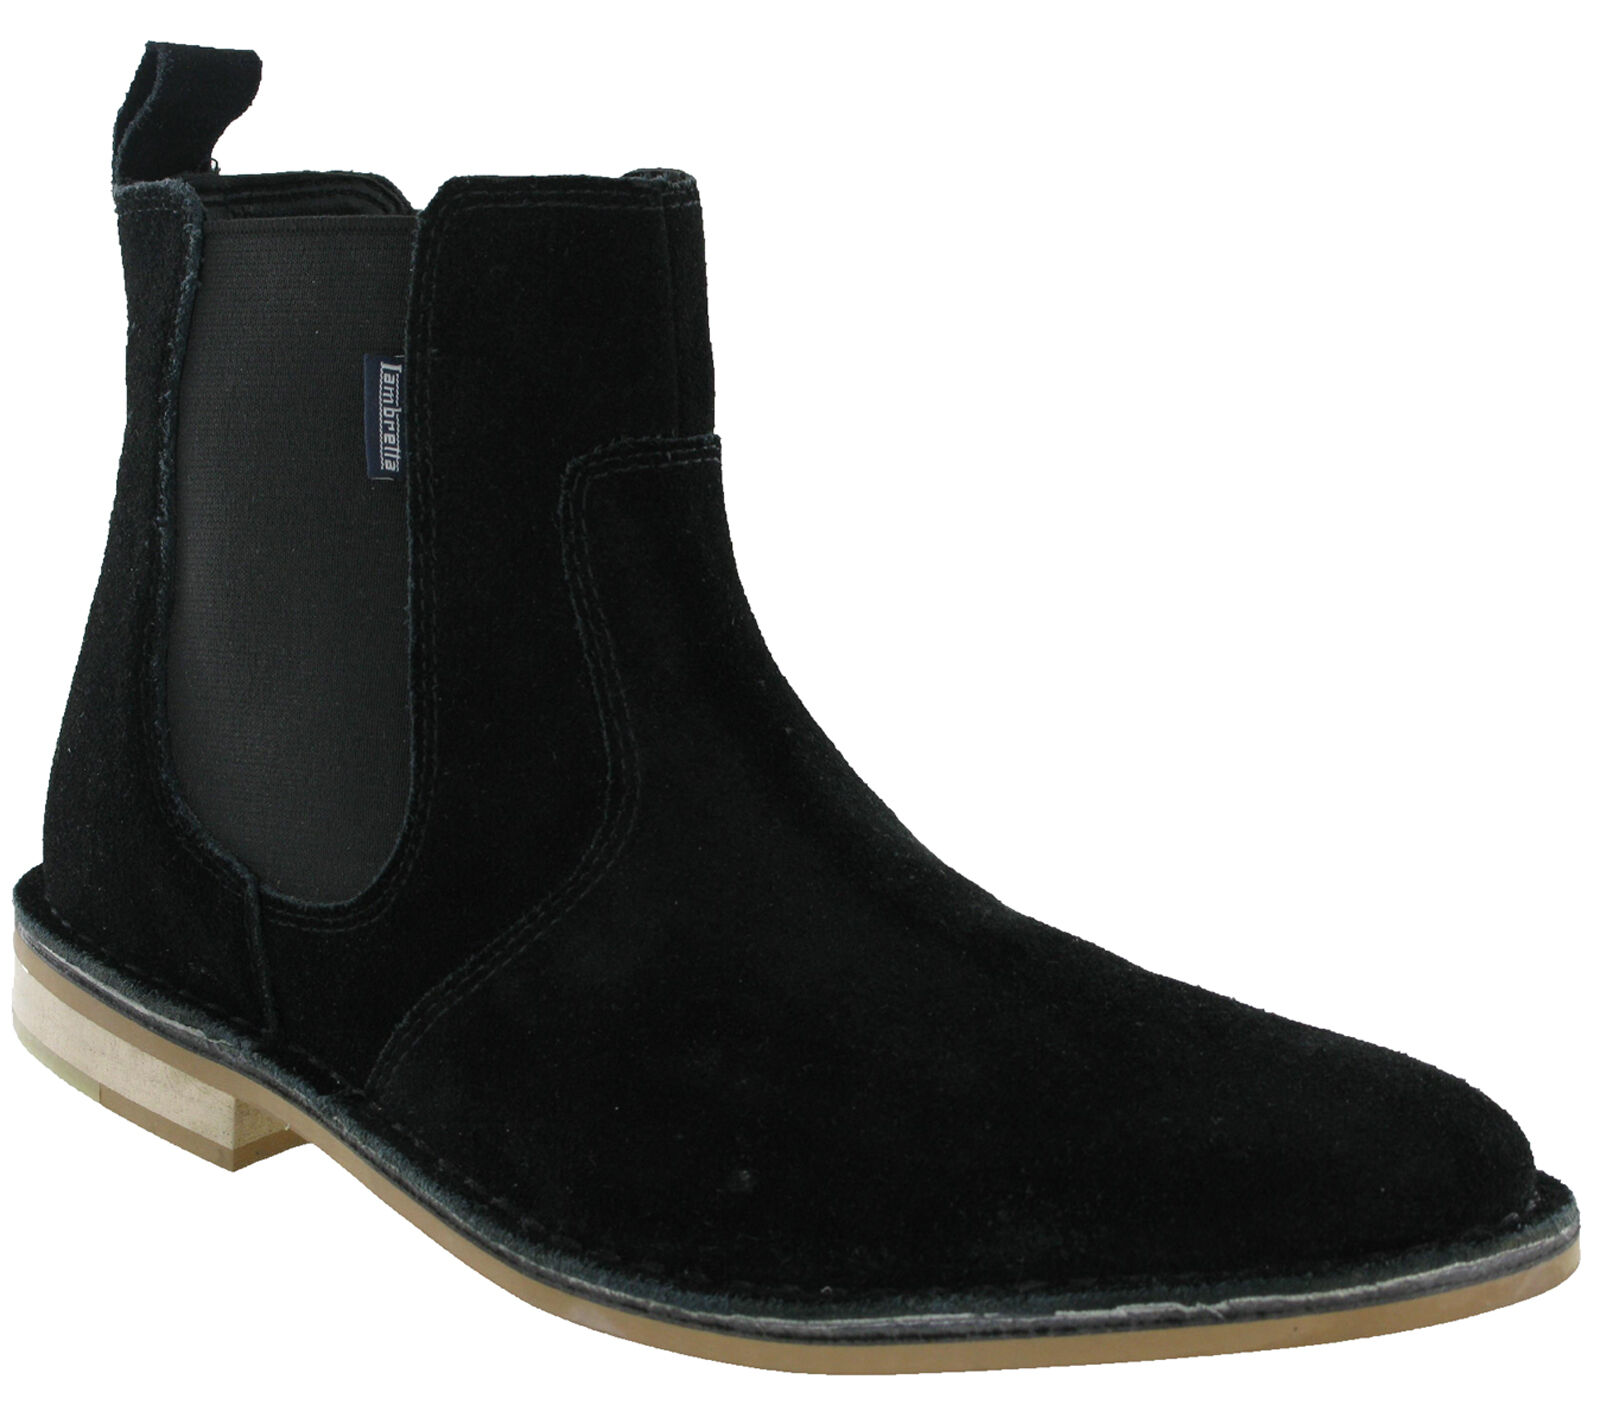 c7be7f4714f7 Lambretta Chelsea Boots Desert Ankle Suede Leather Dealer MOD Pull On Mens